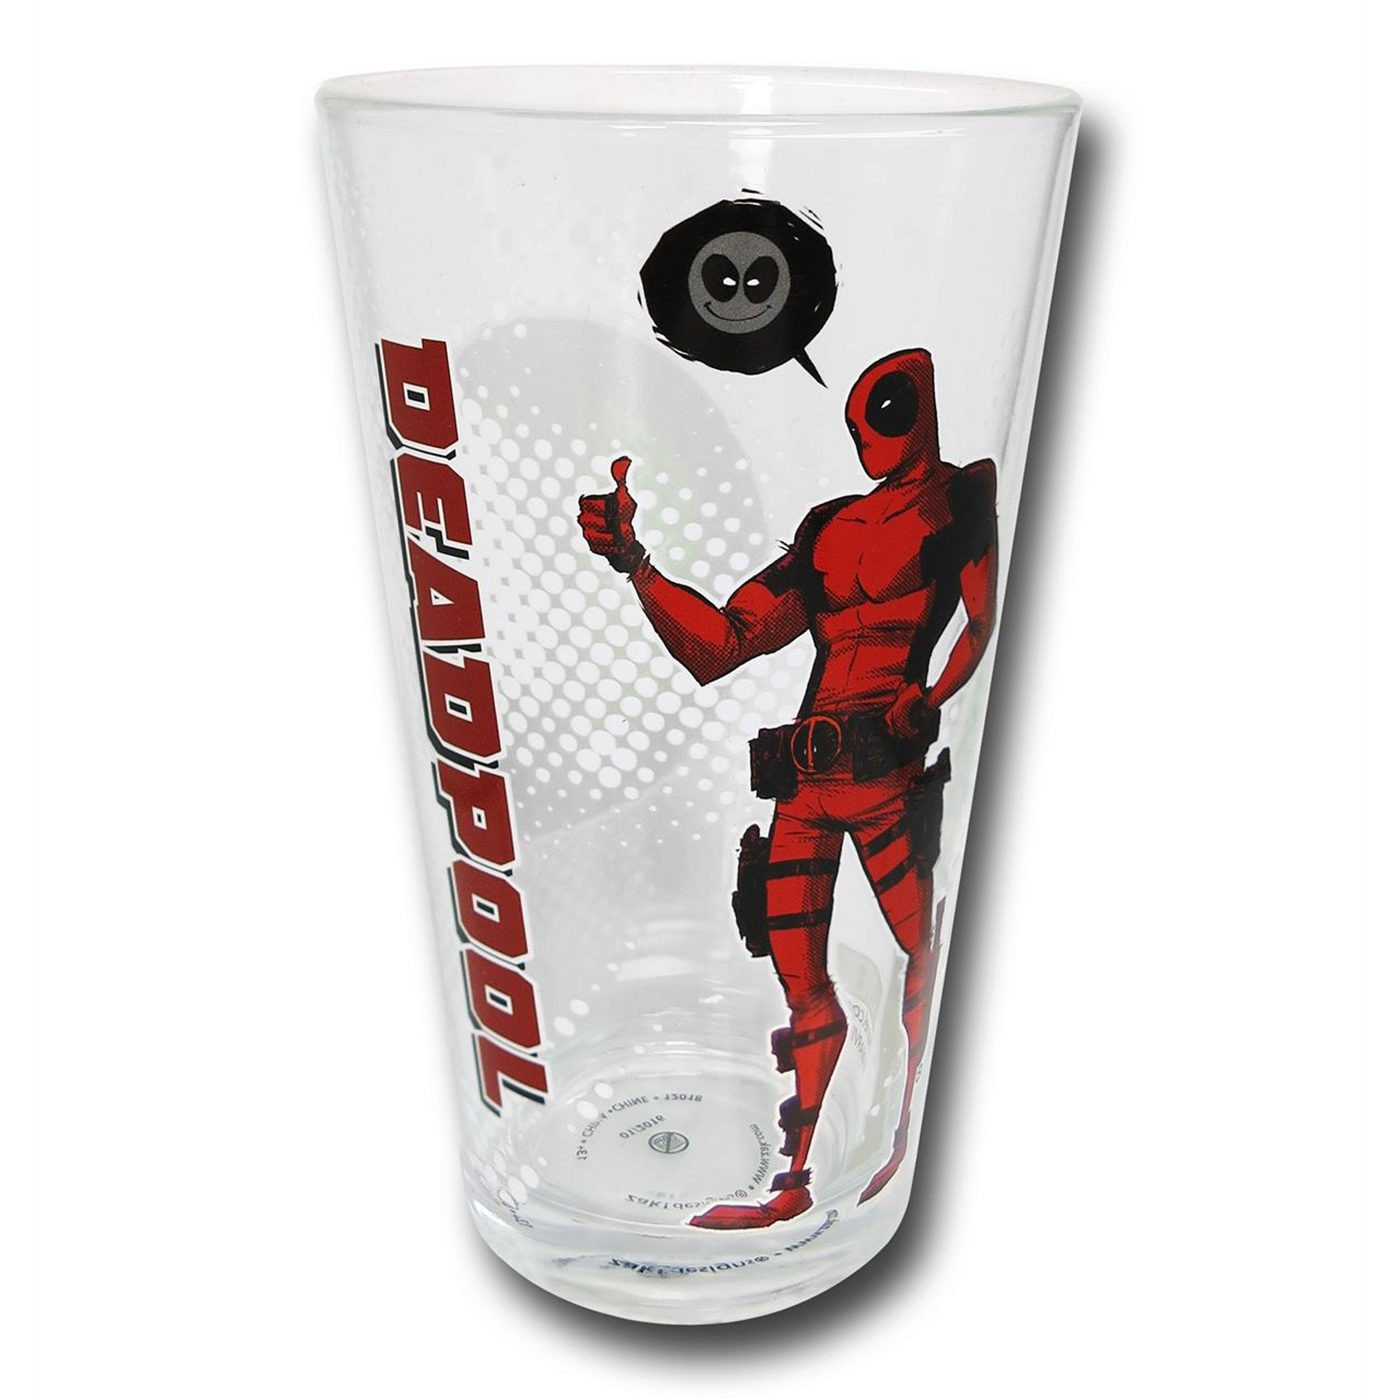 Deadpool Image and Symbols Pint Glass Set of 4